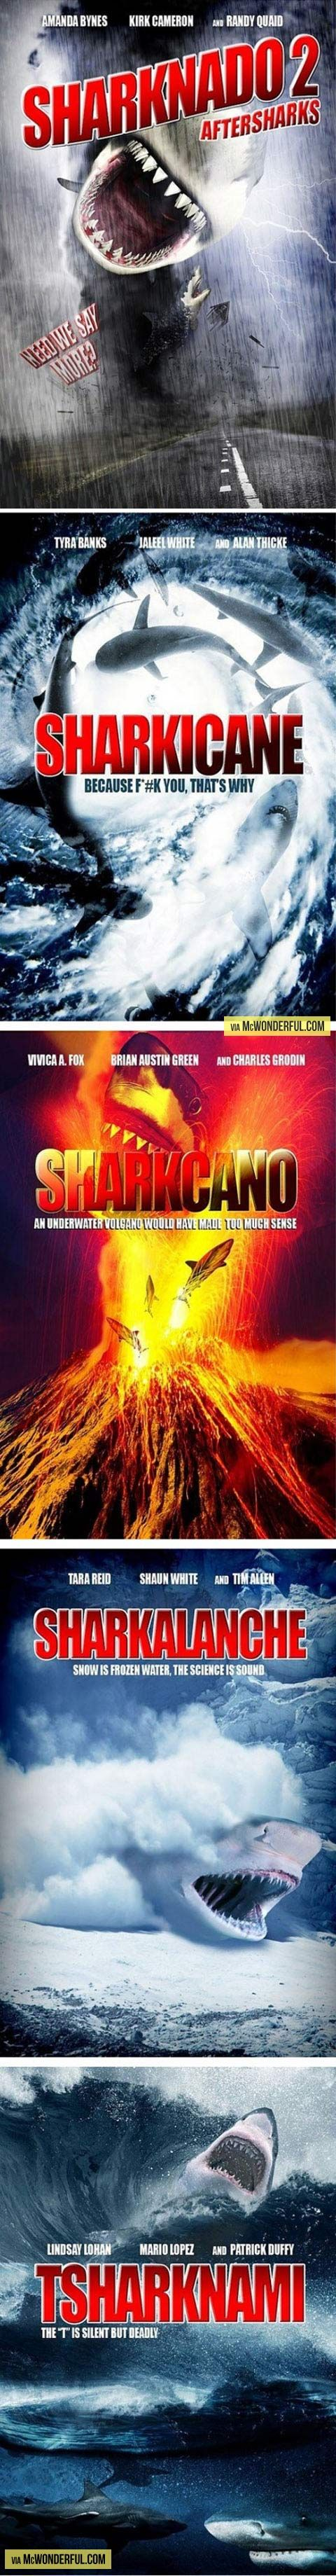 Possible sequels to Sharknado. Is it sad that I would watch these? lol